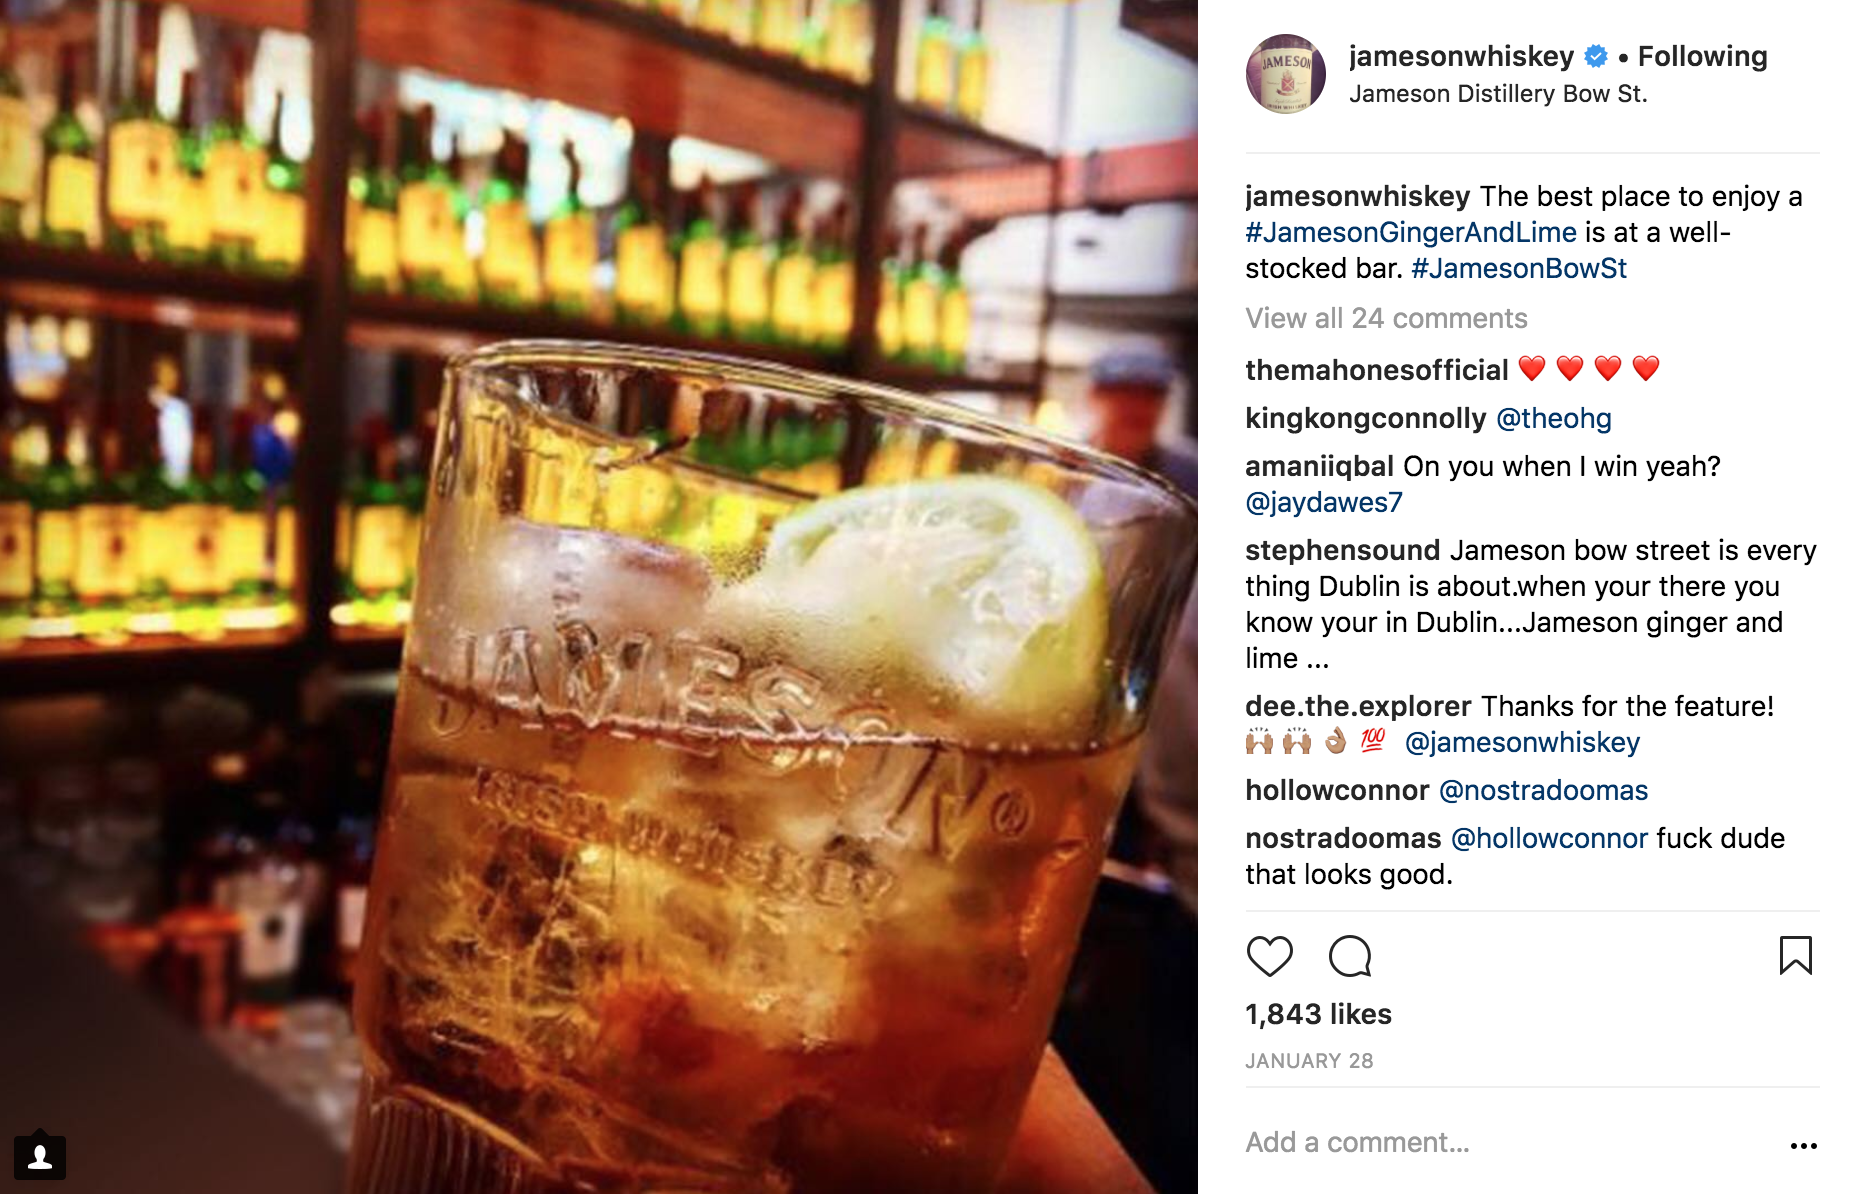 The best place to enjoy a #JamesonGingerAndLime is a well-stocked bar.